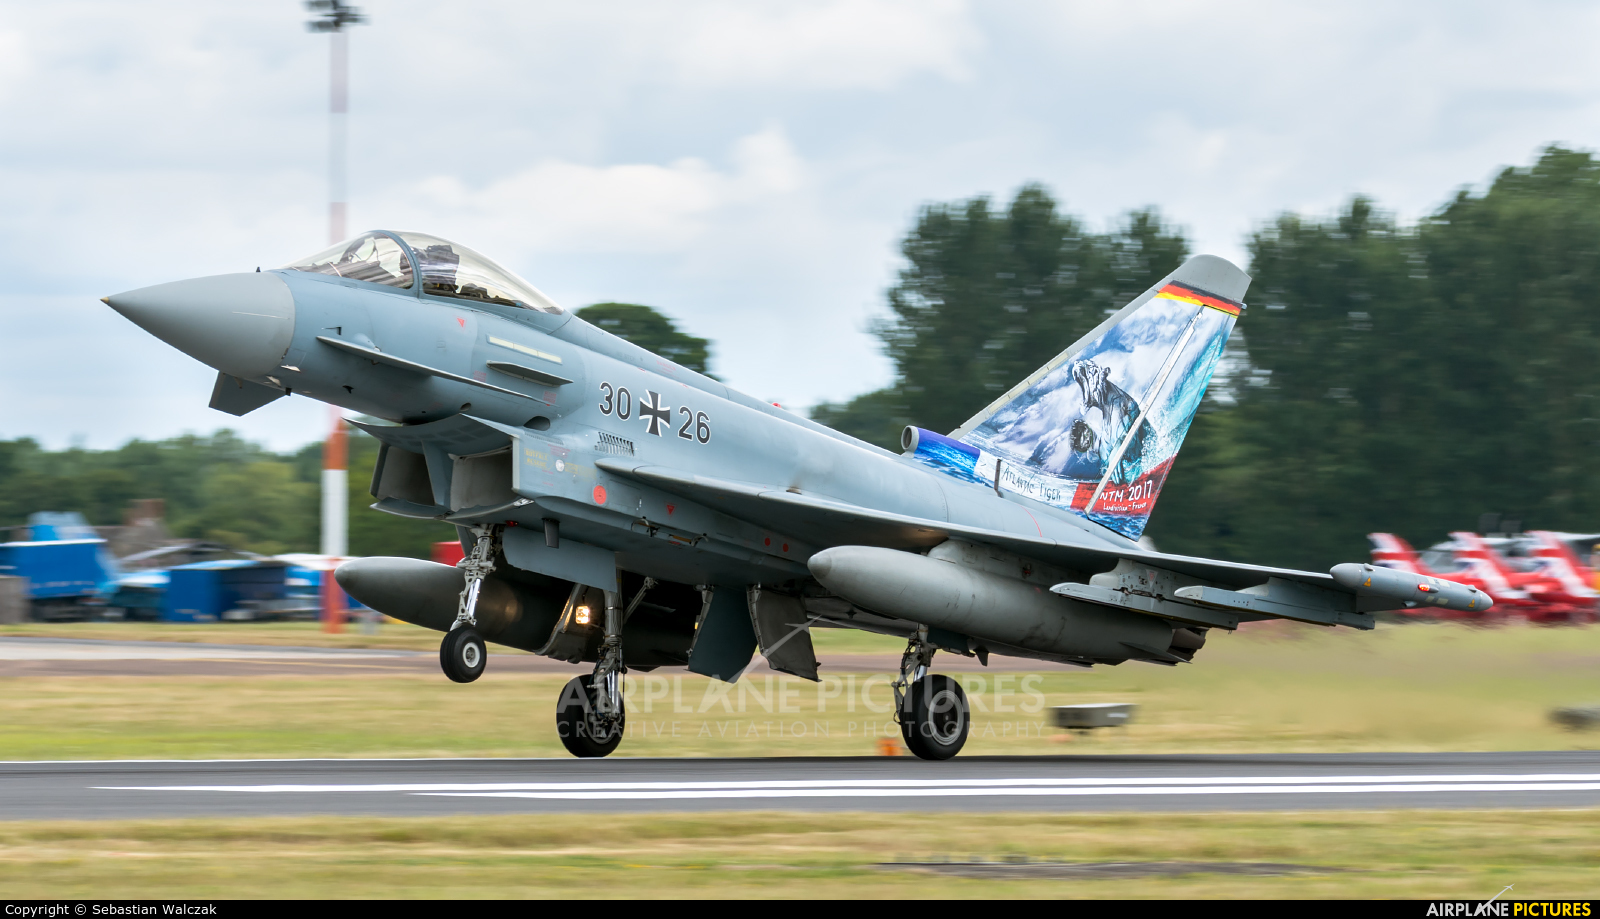 Germany - Air Force 30+26 aircraft at Fairford